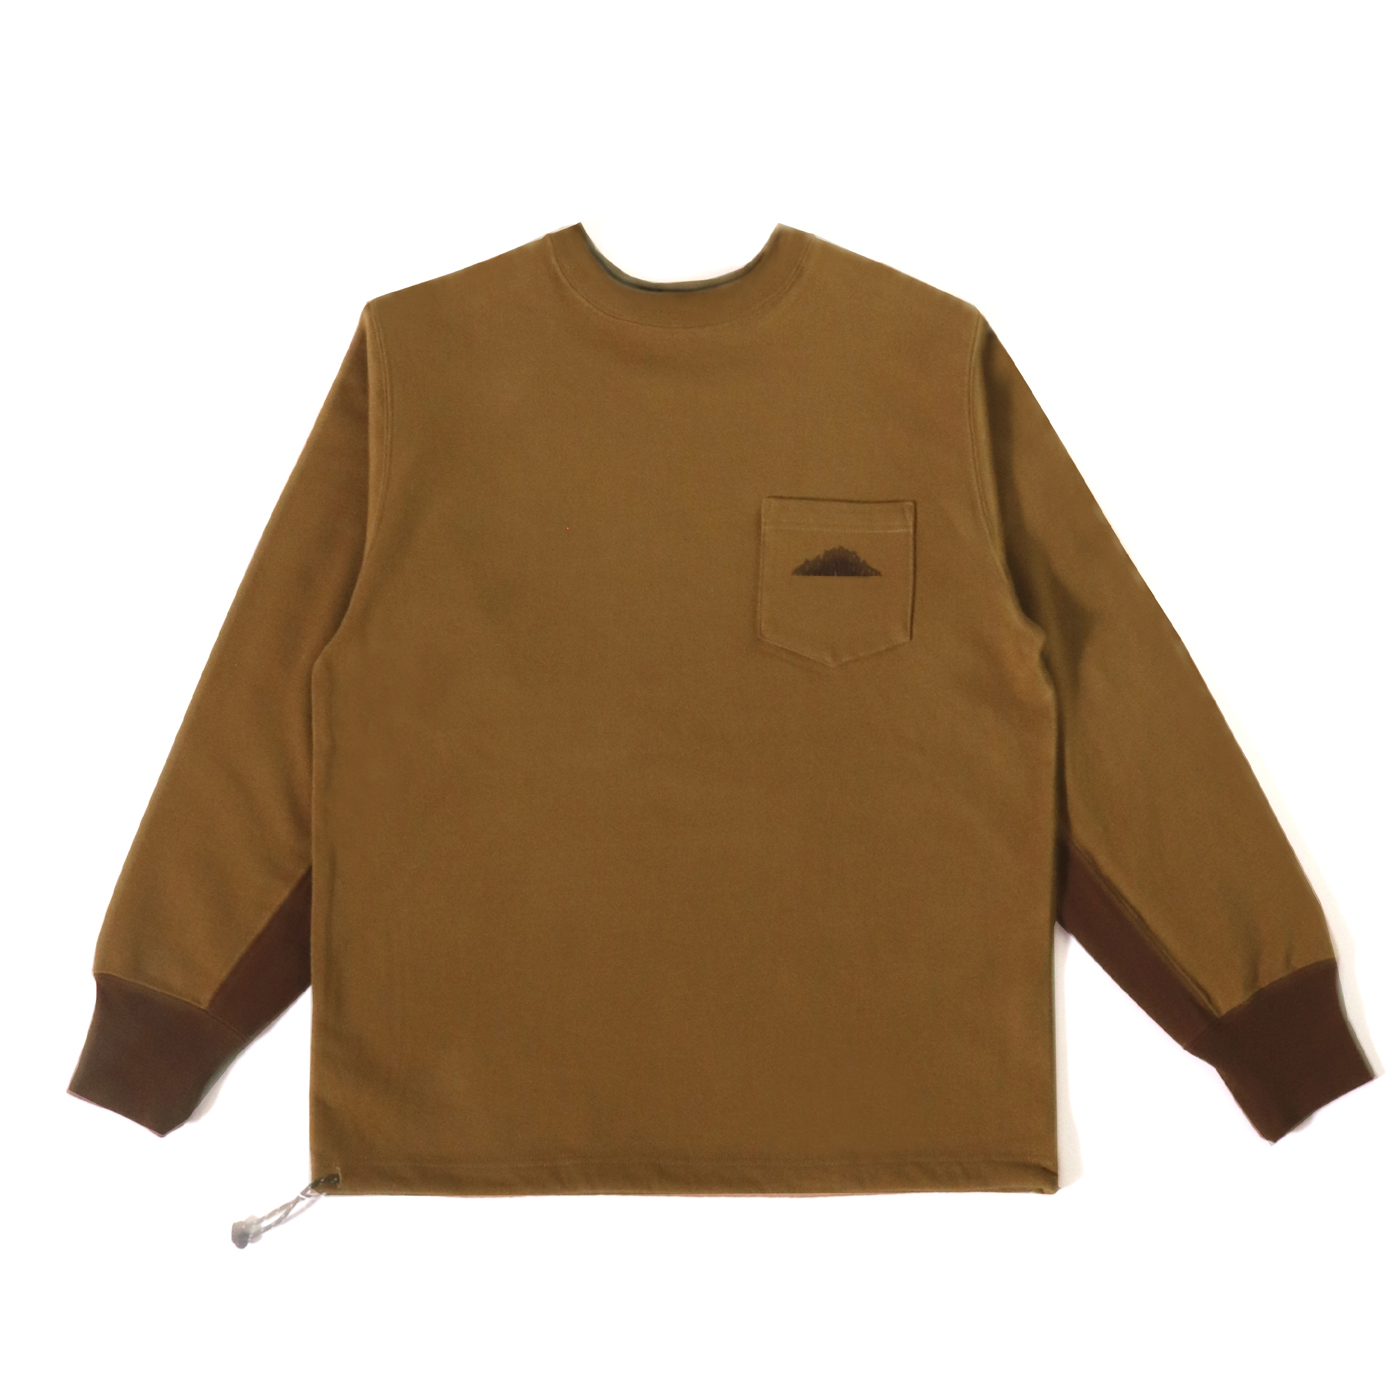 product: Granby Recycled Crew / color: BEIGE 1